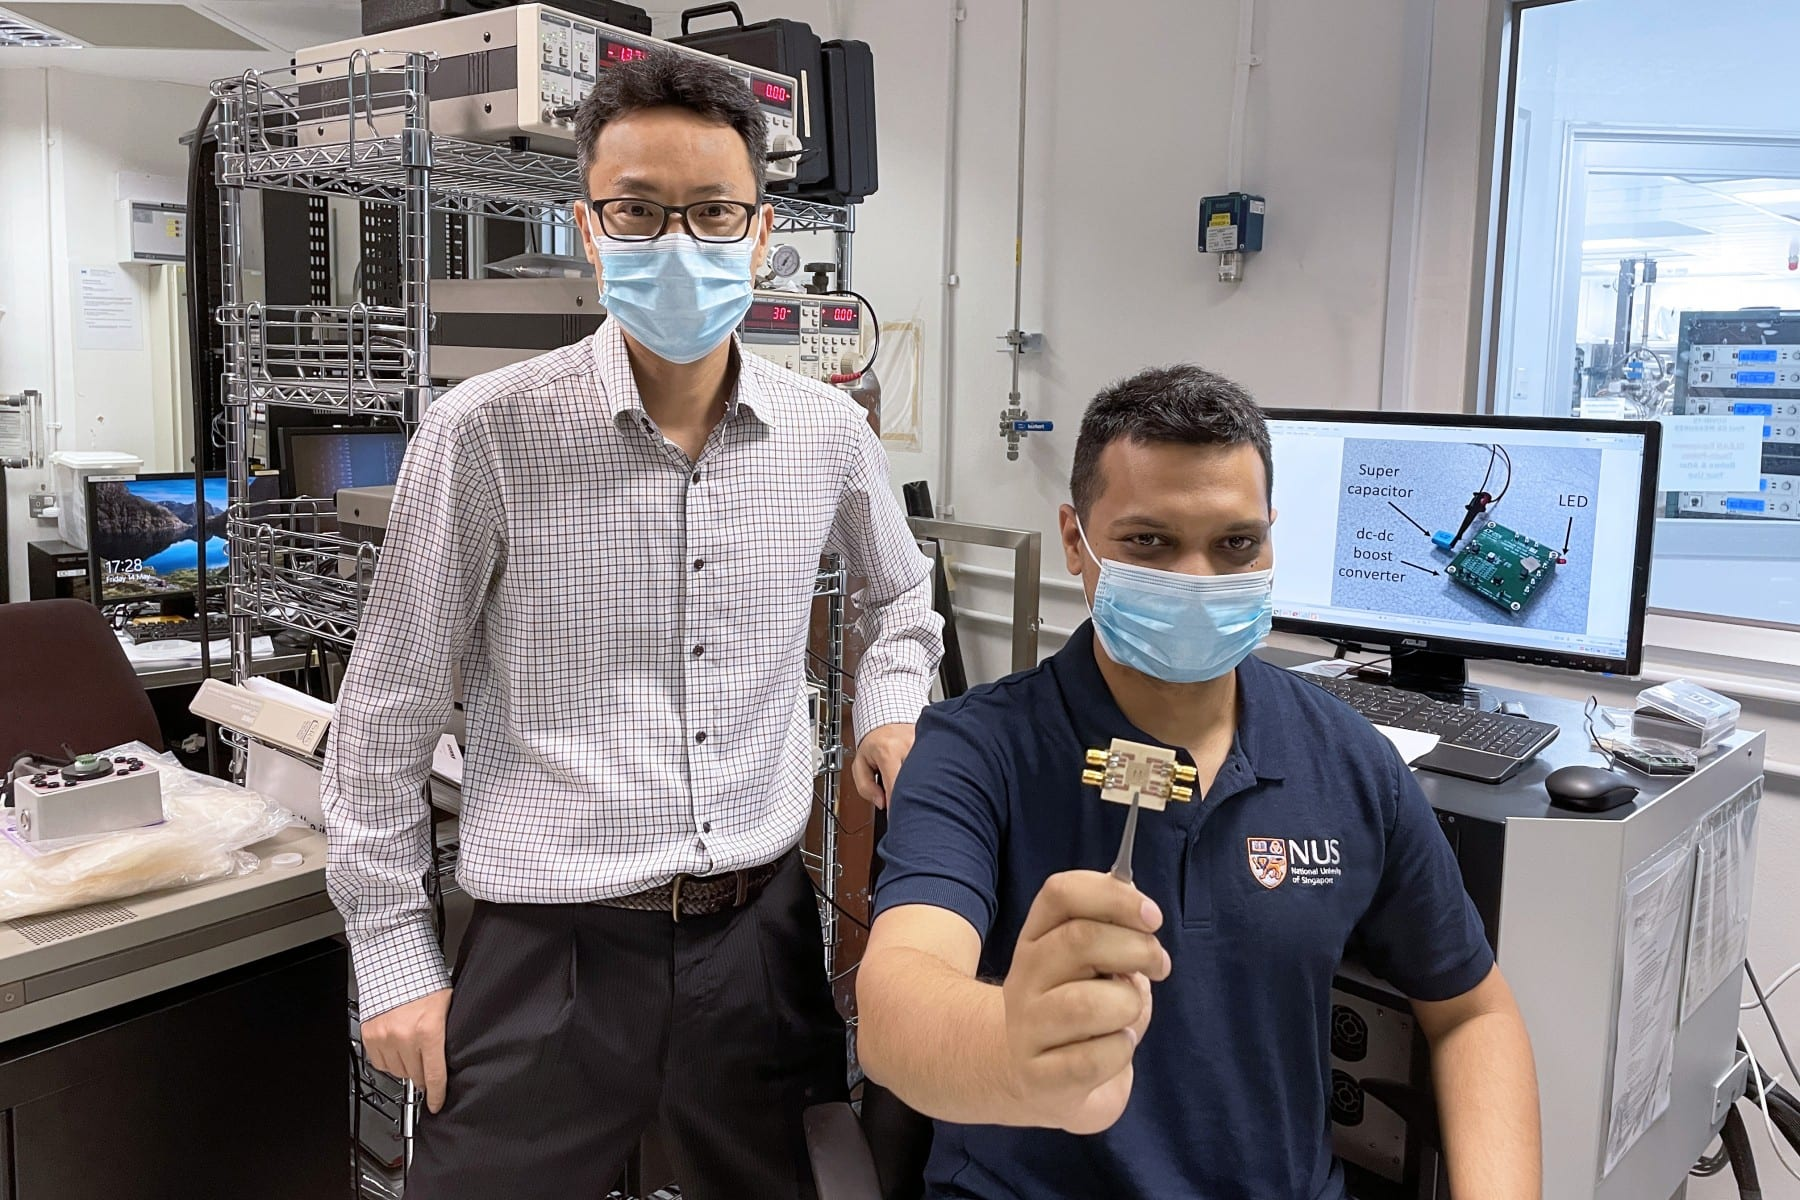 The research breakthrough was achieved by a team led by Professor Yang Hyunsoo (left). Dr Raghav Sharma (right), the first author of the paper, is holding a chip embedded with about 50 spin-torque oscillators.